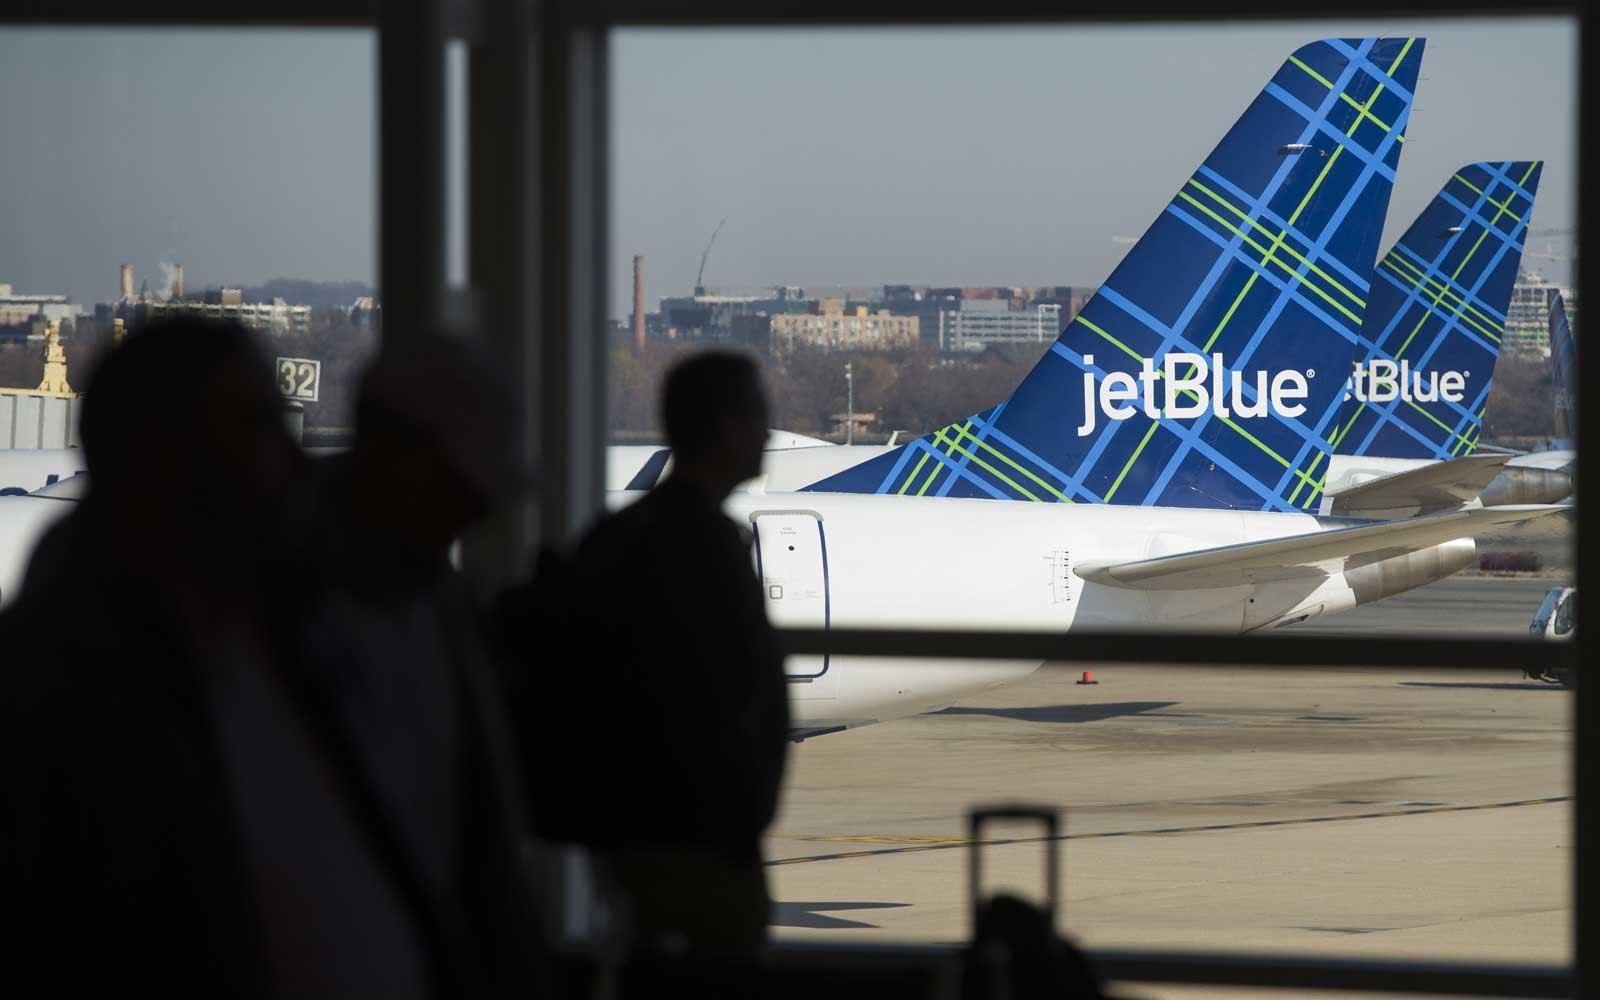 Travelers walk past the tails of JetBlue airplanes in the airport terminal